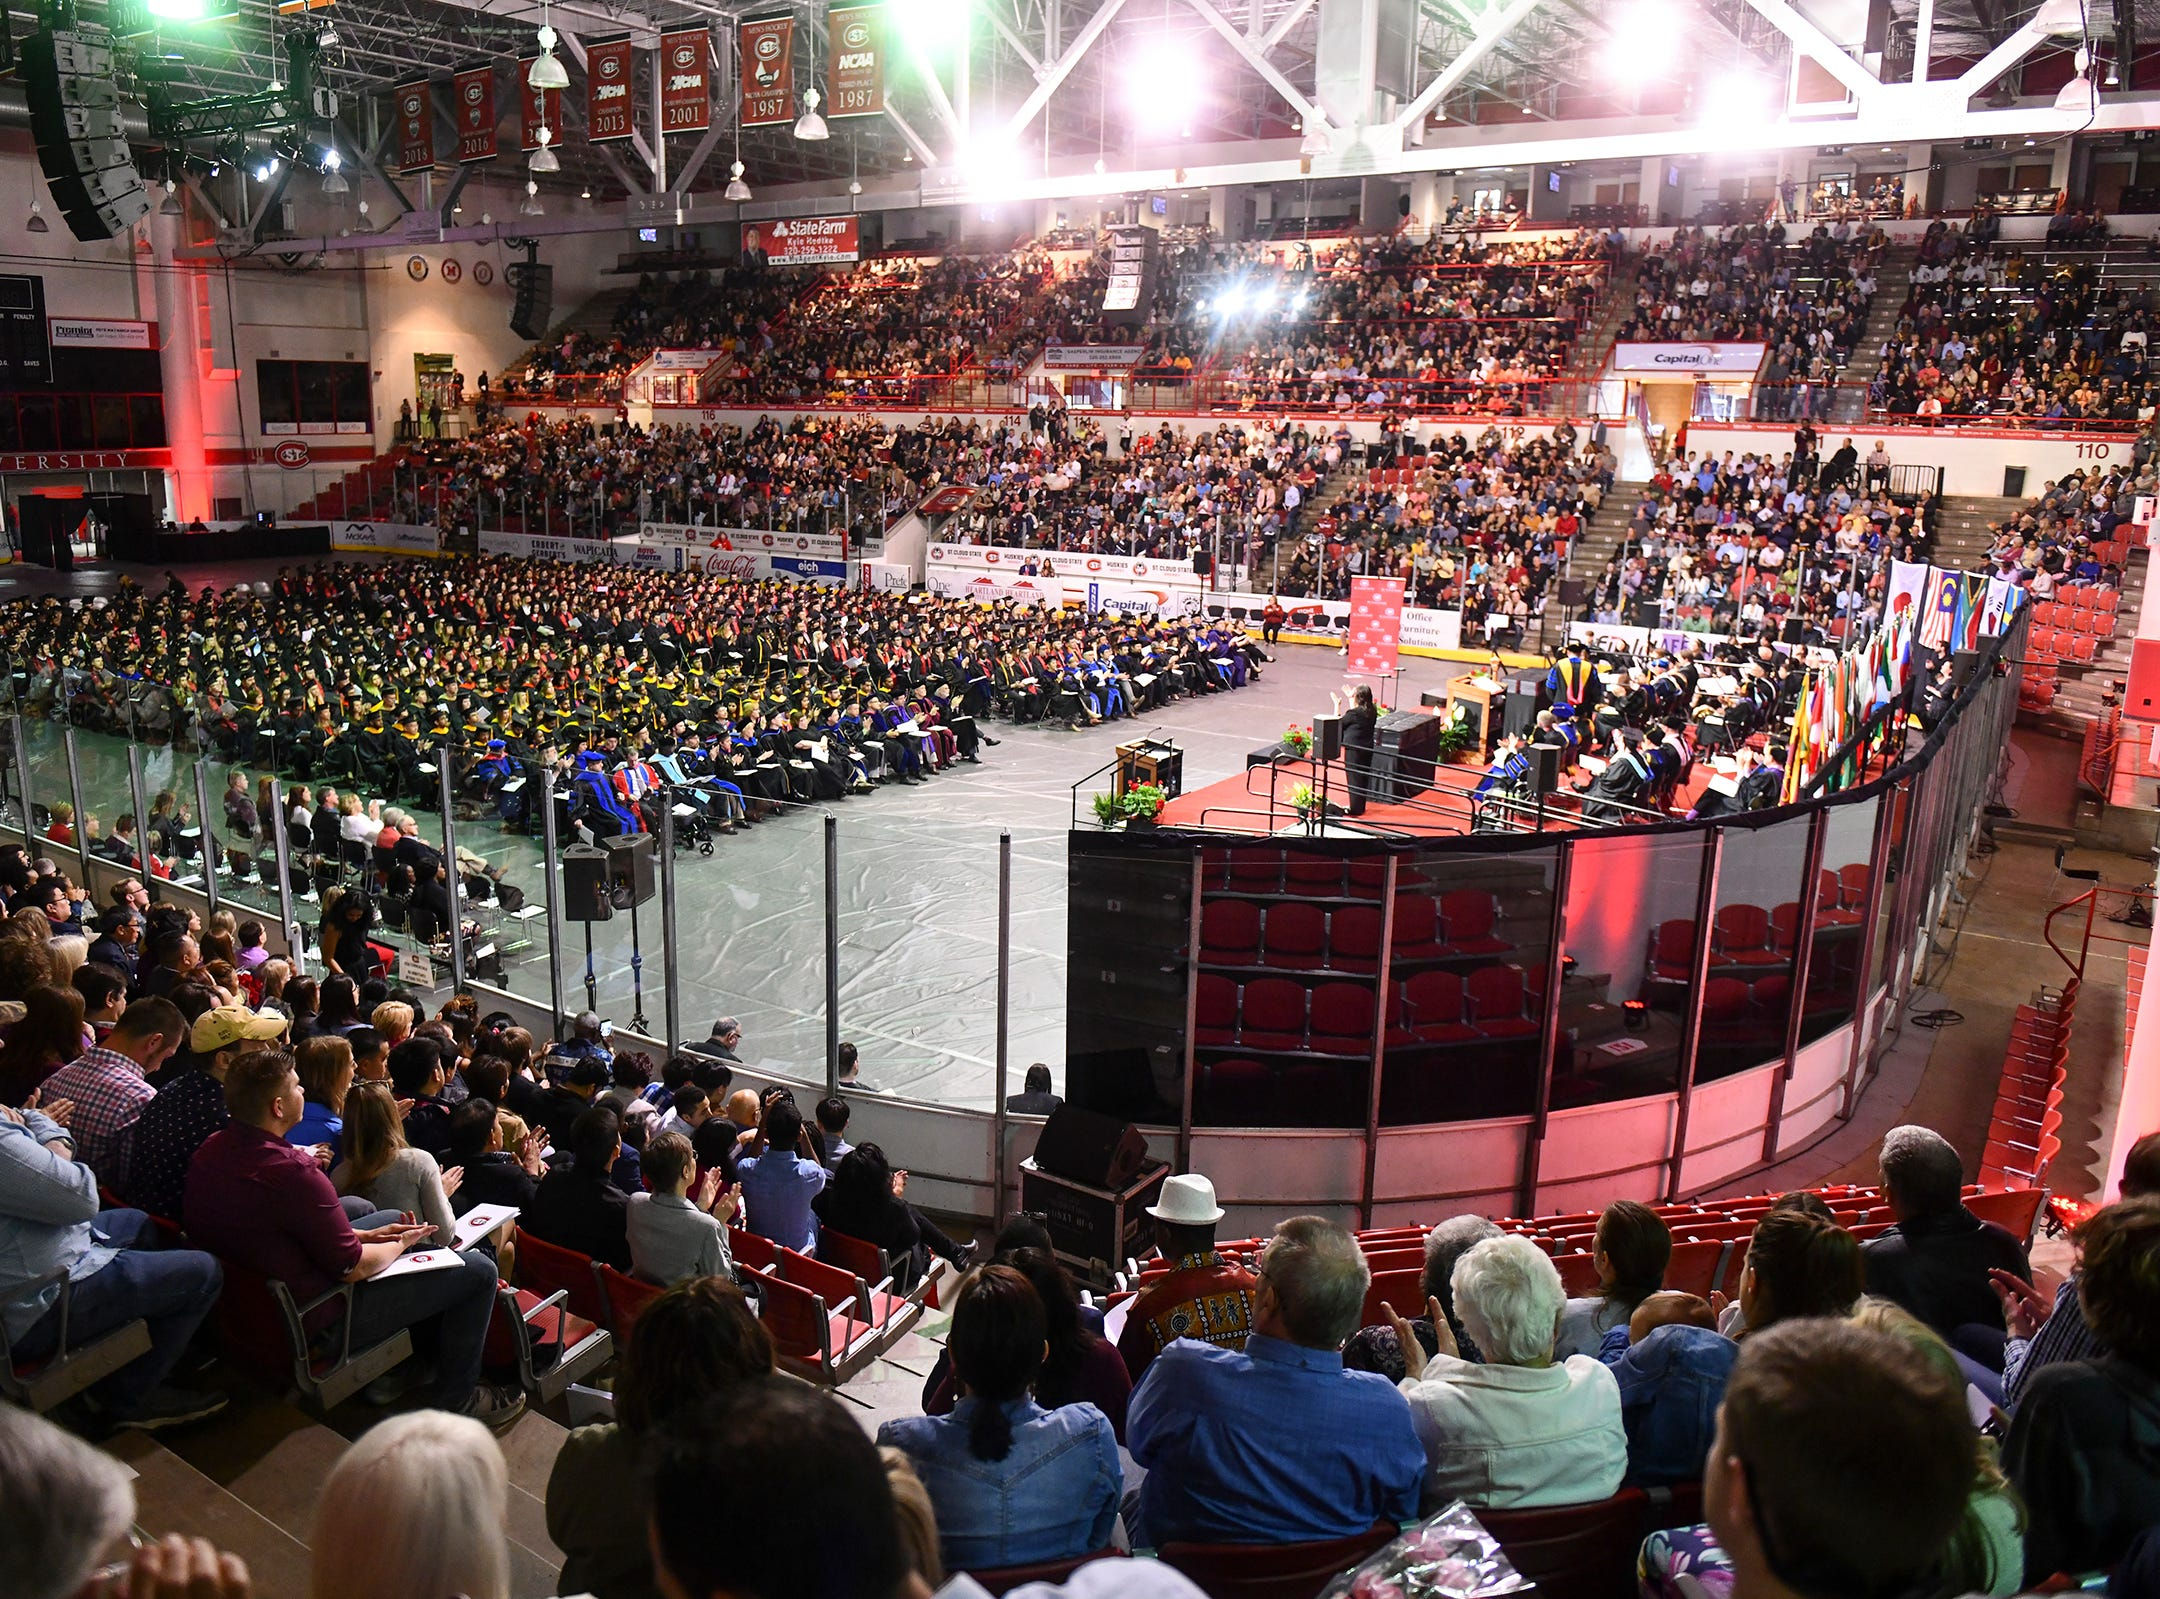 The Herb Brooks National Hockey Center hosted commencement ceremonies at St. Cloud State University this year.